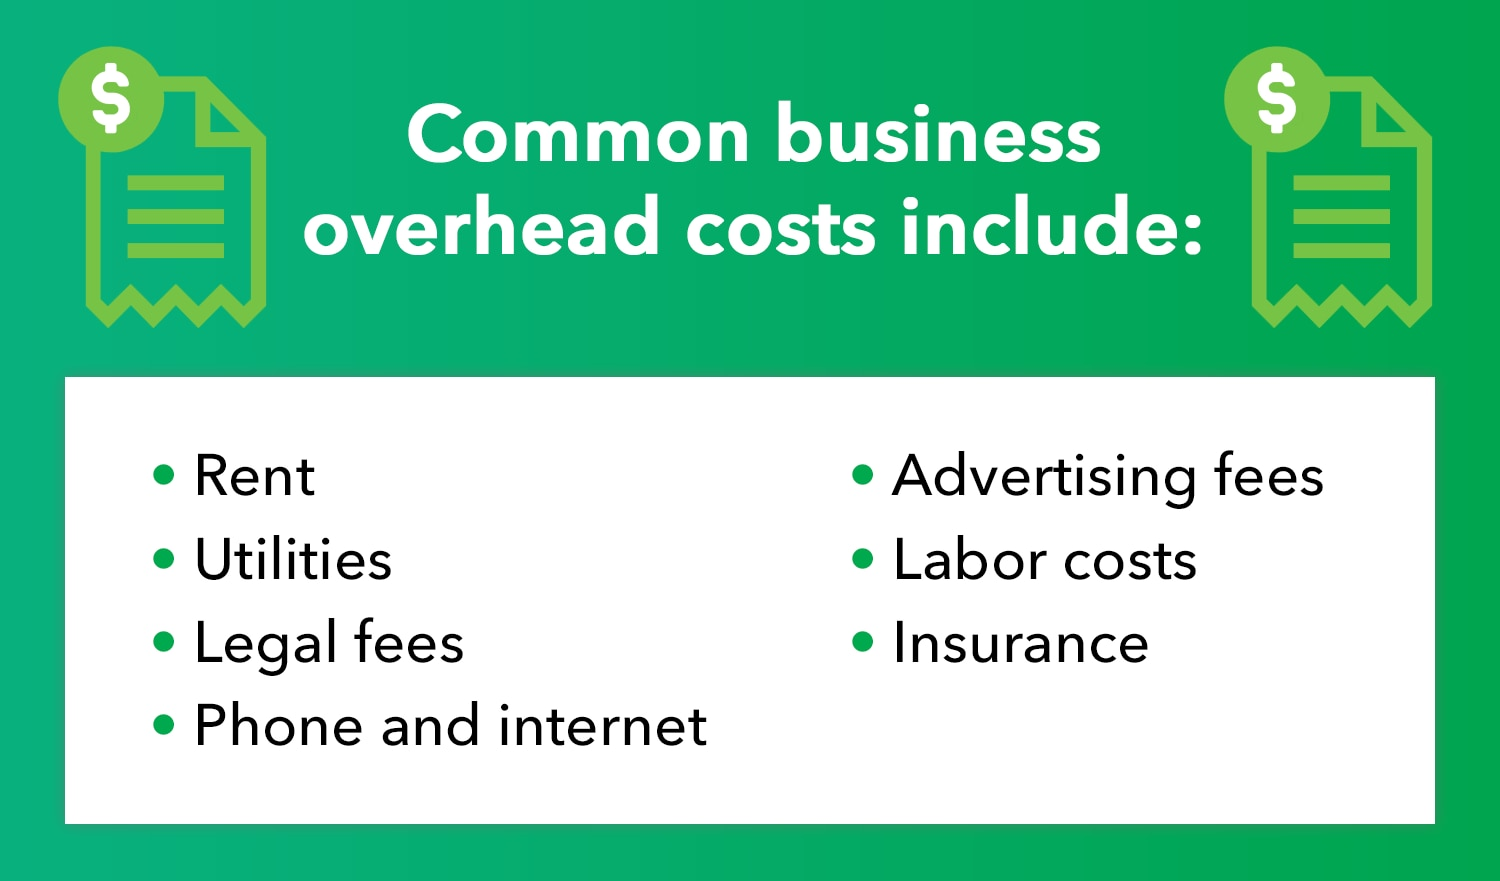 Common business overhead costs include: rent, utilities, legal fees, phone and internet, advertising fees, labor costs, and insurance.